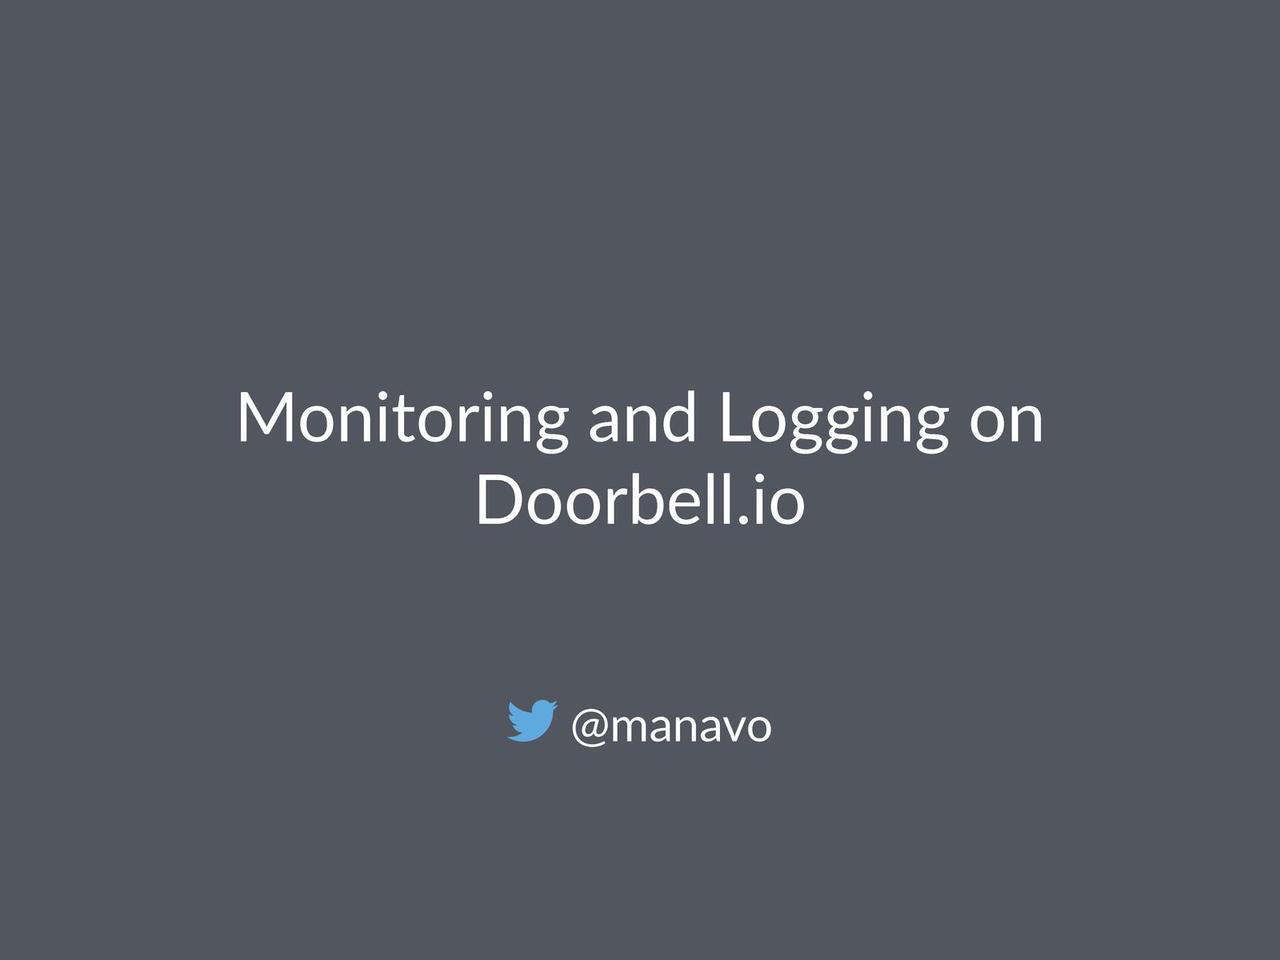 Monitoring and Logging on Doorbell.io